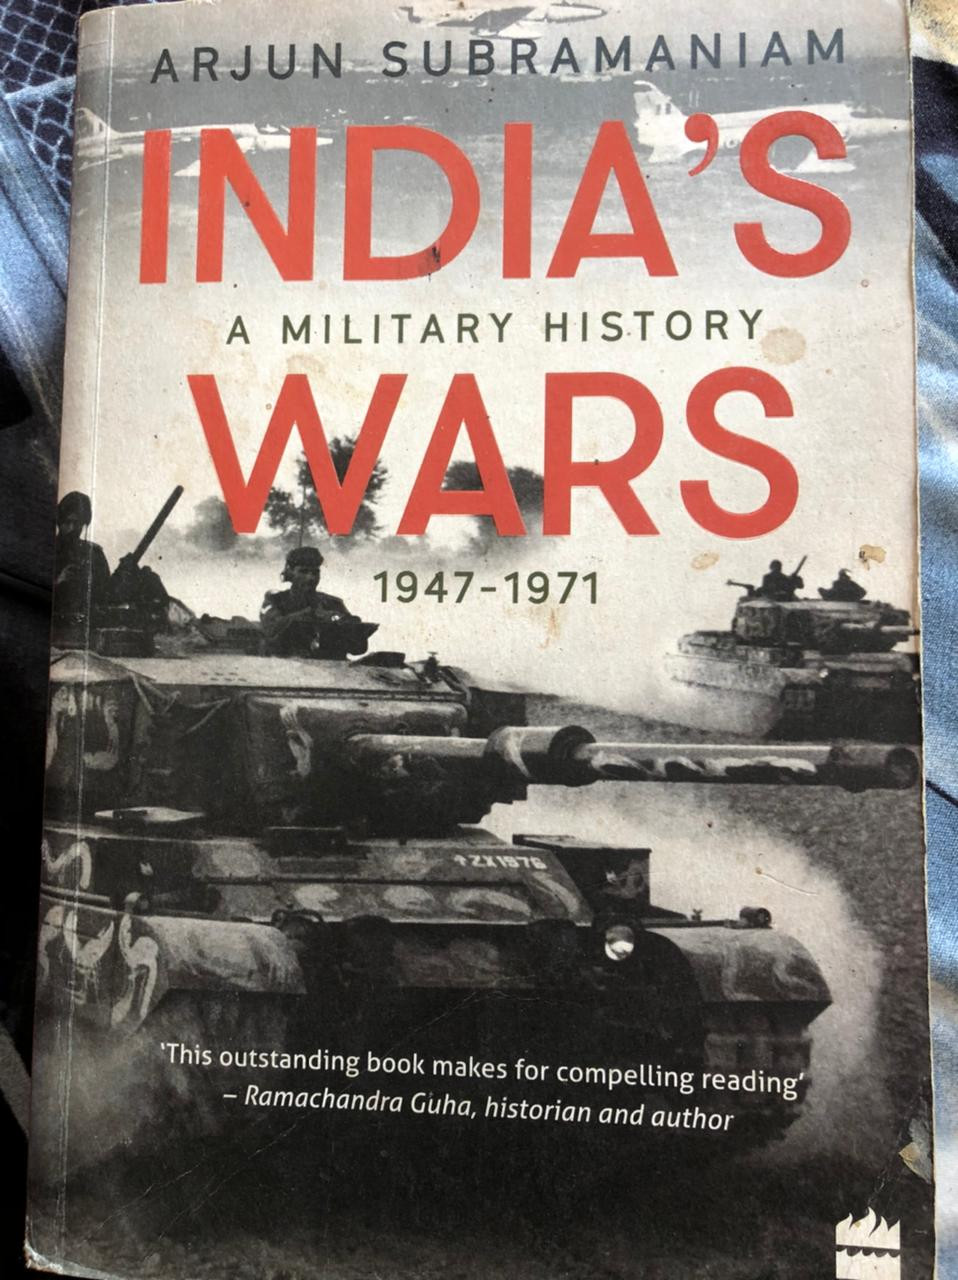 India's Wars - A Military History 1947-1971